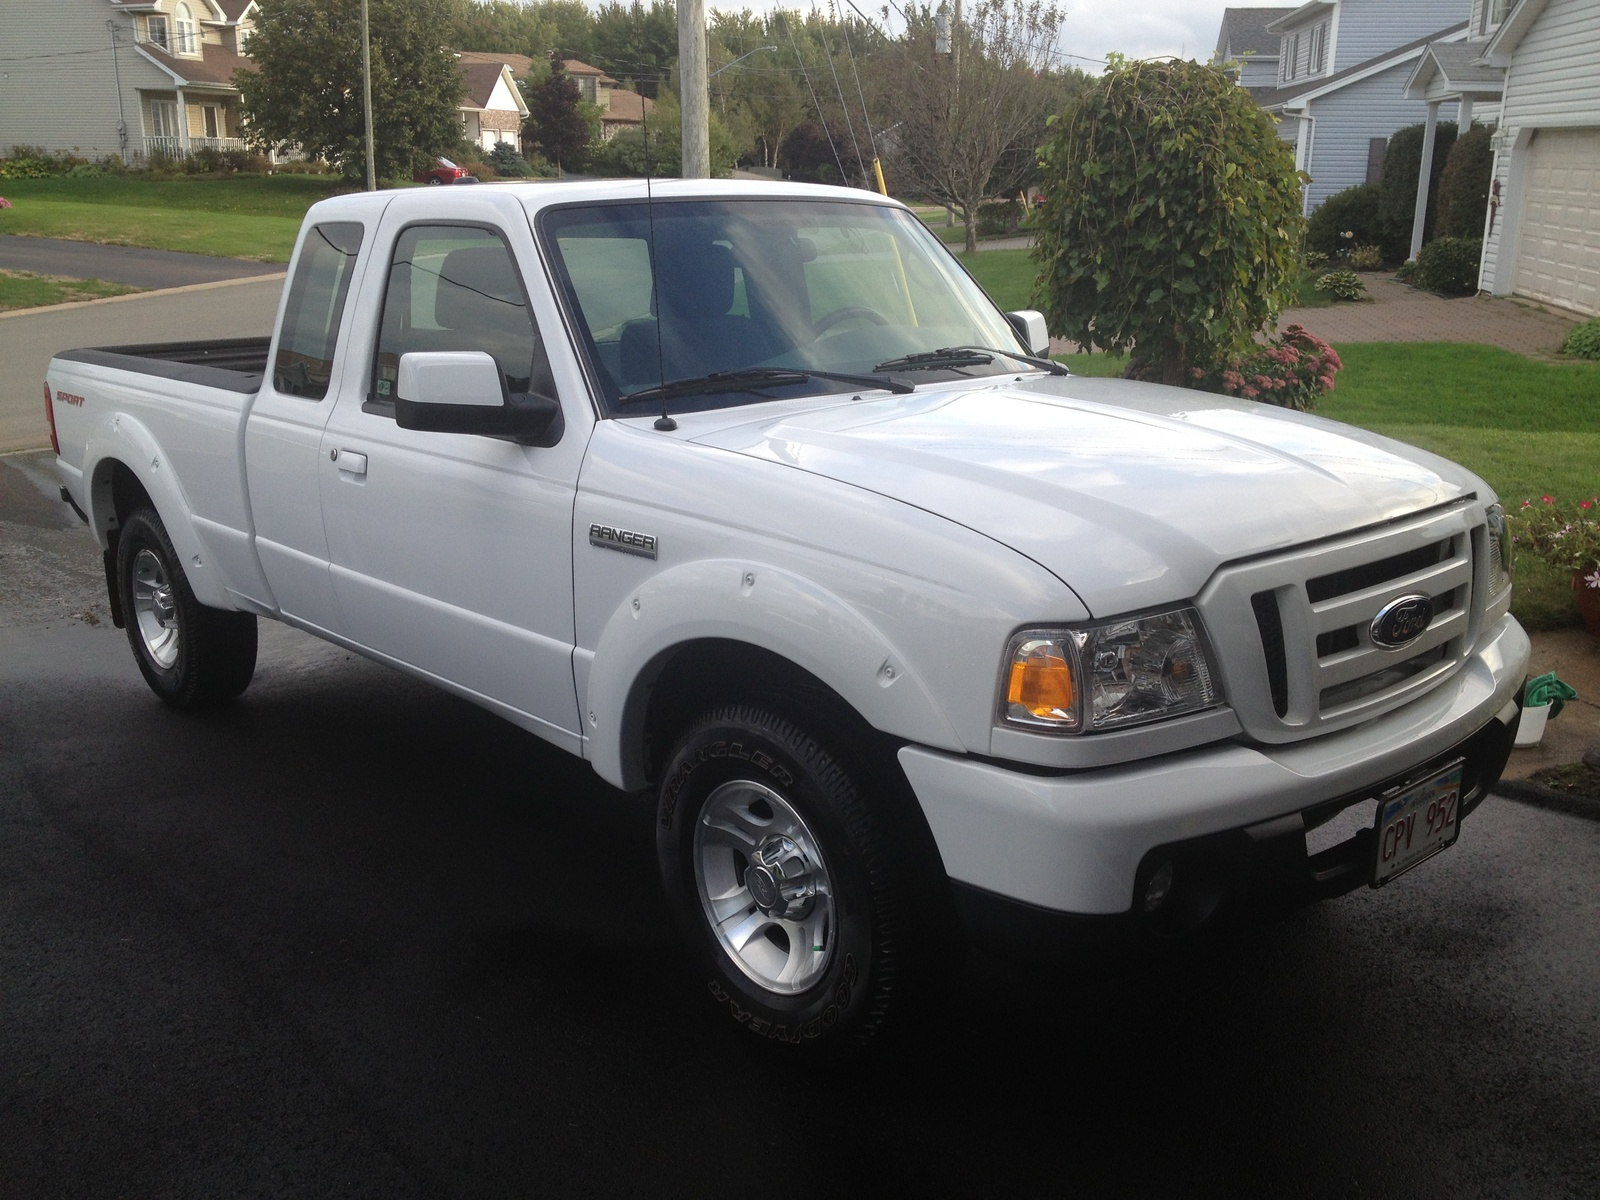 Ford Ranger Dr Supercab L M additionally  likewise Ford Ranger Sport X Sport Dr Supercab Americanlisted also F In In Lift Kits Largethumb Transpprodlgnew besides . on 2011 ford ranger xlt supercab 4 door